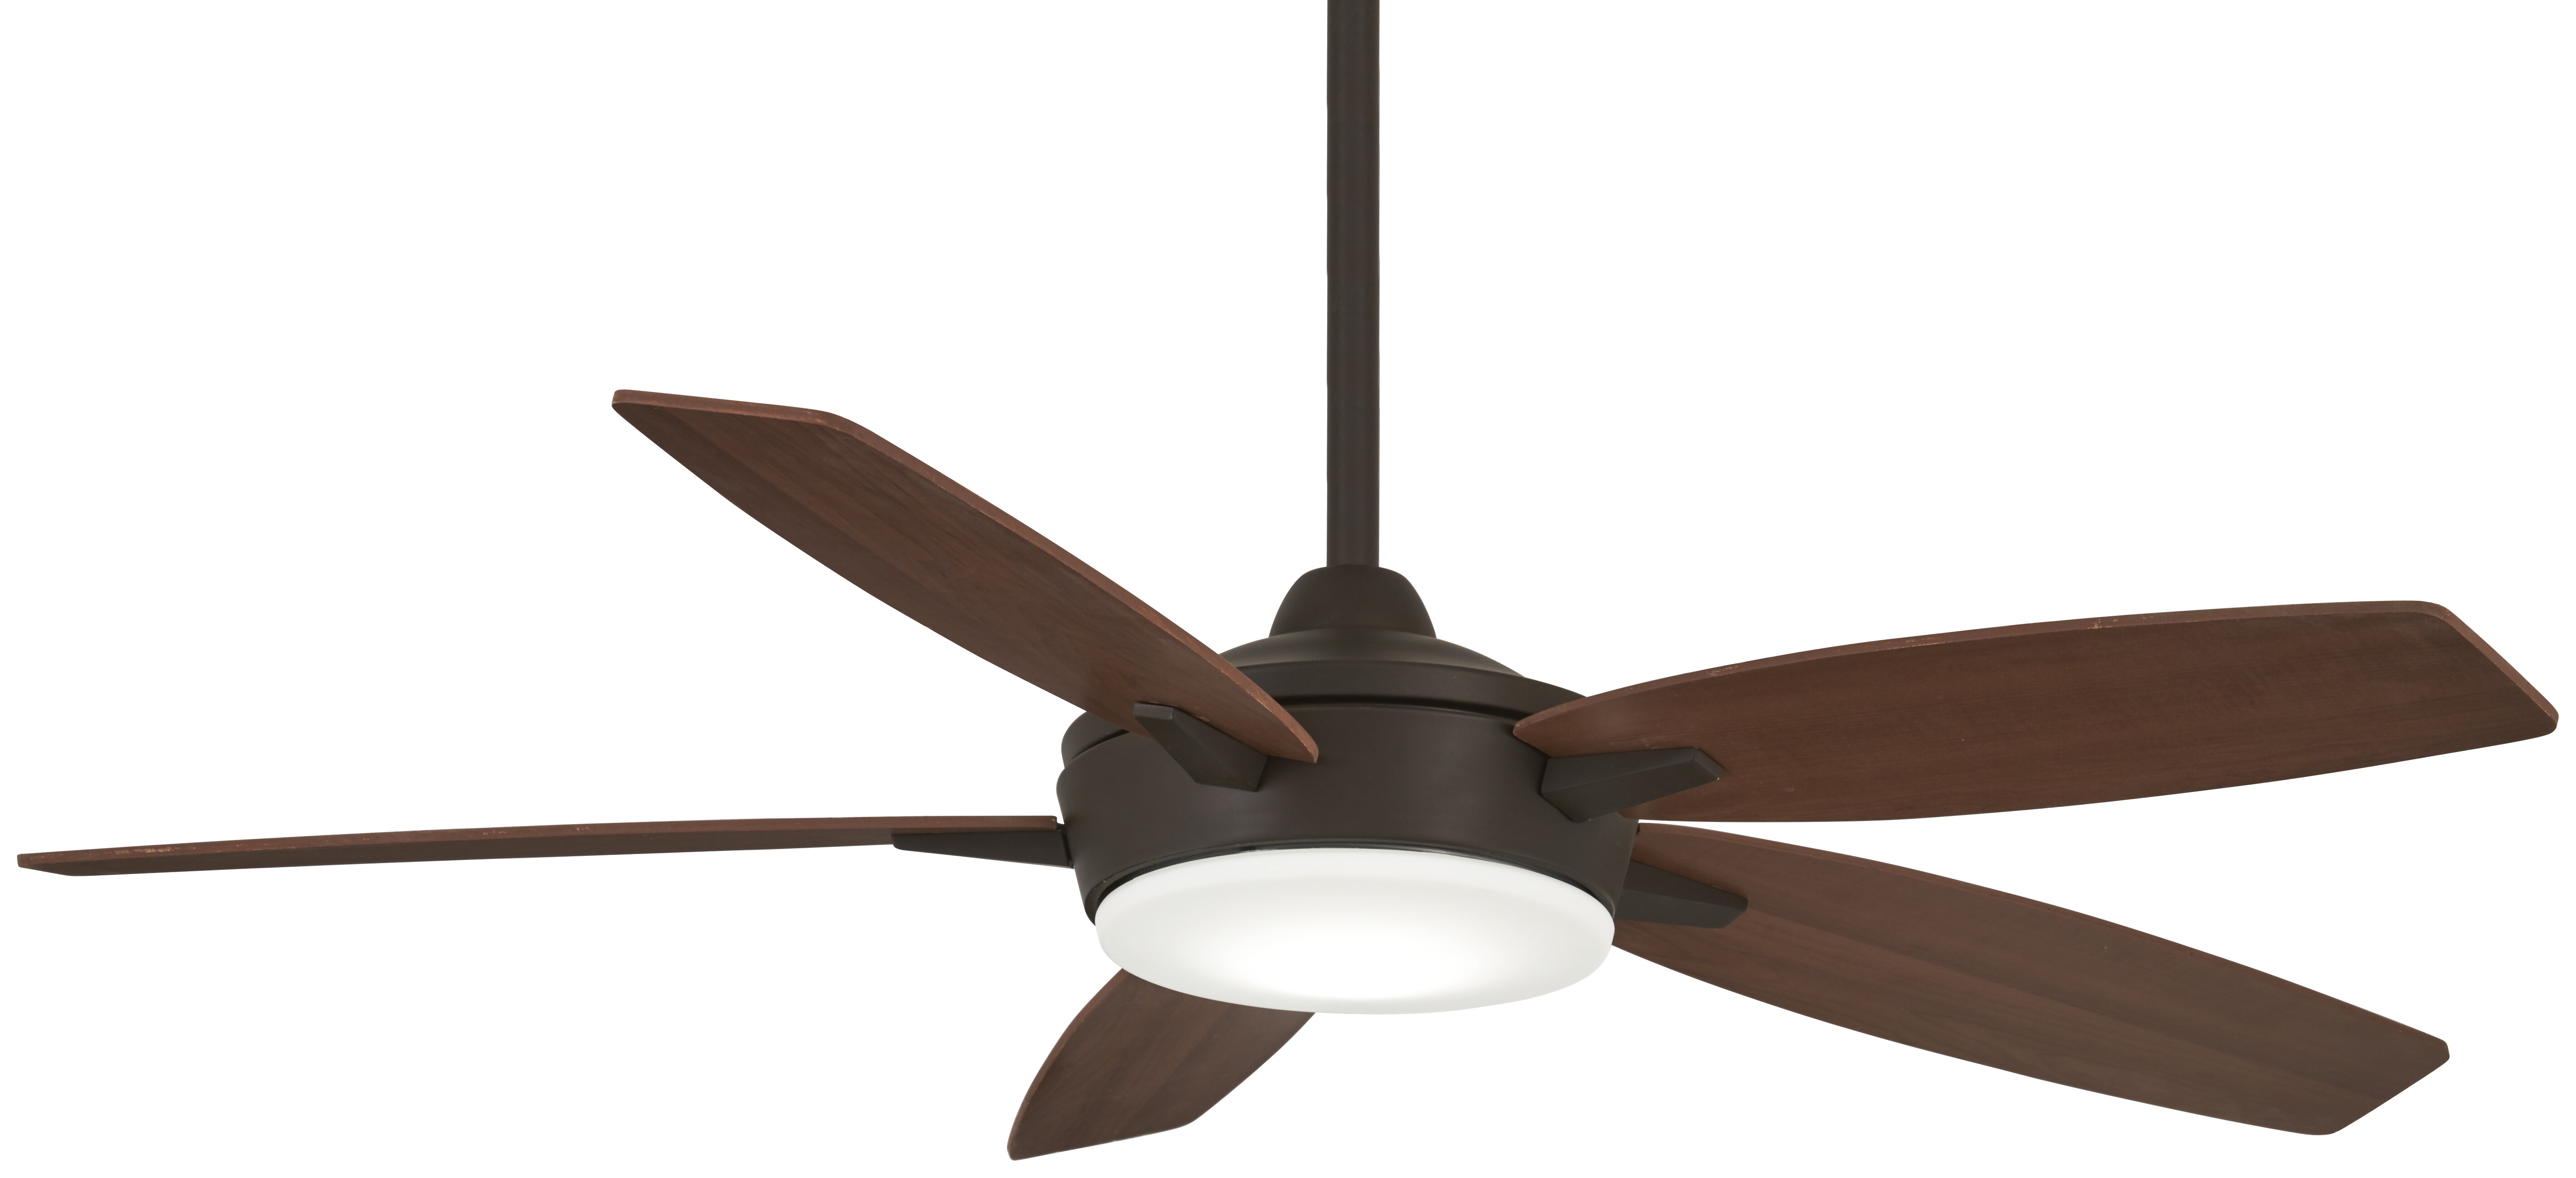 Minka Aire 52 5 Blade Led Standard Ceiling Fan With Remote Control And Light Kit Included Reviews Wayfair